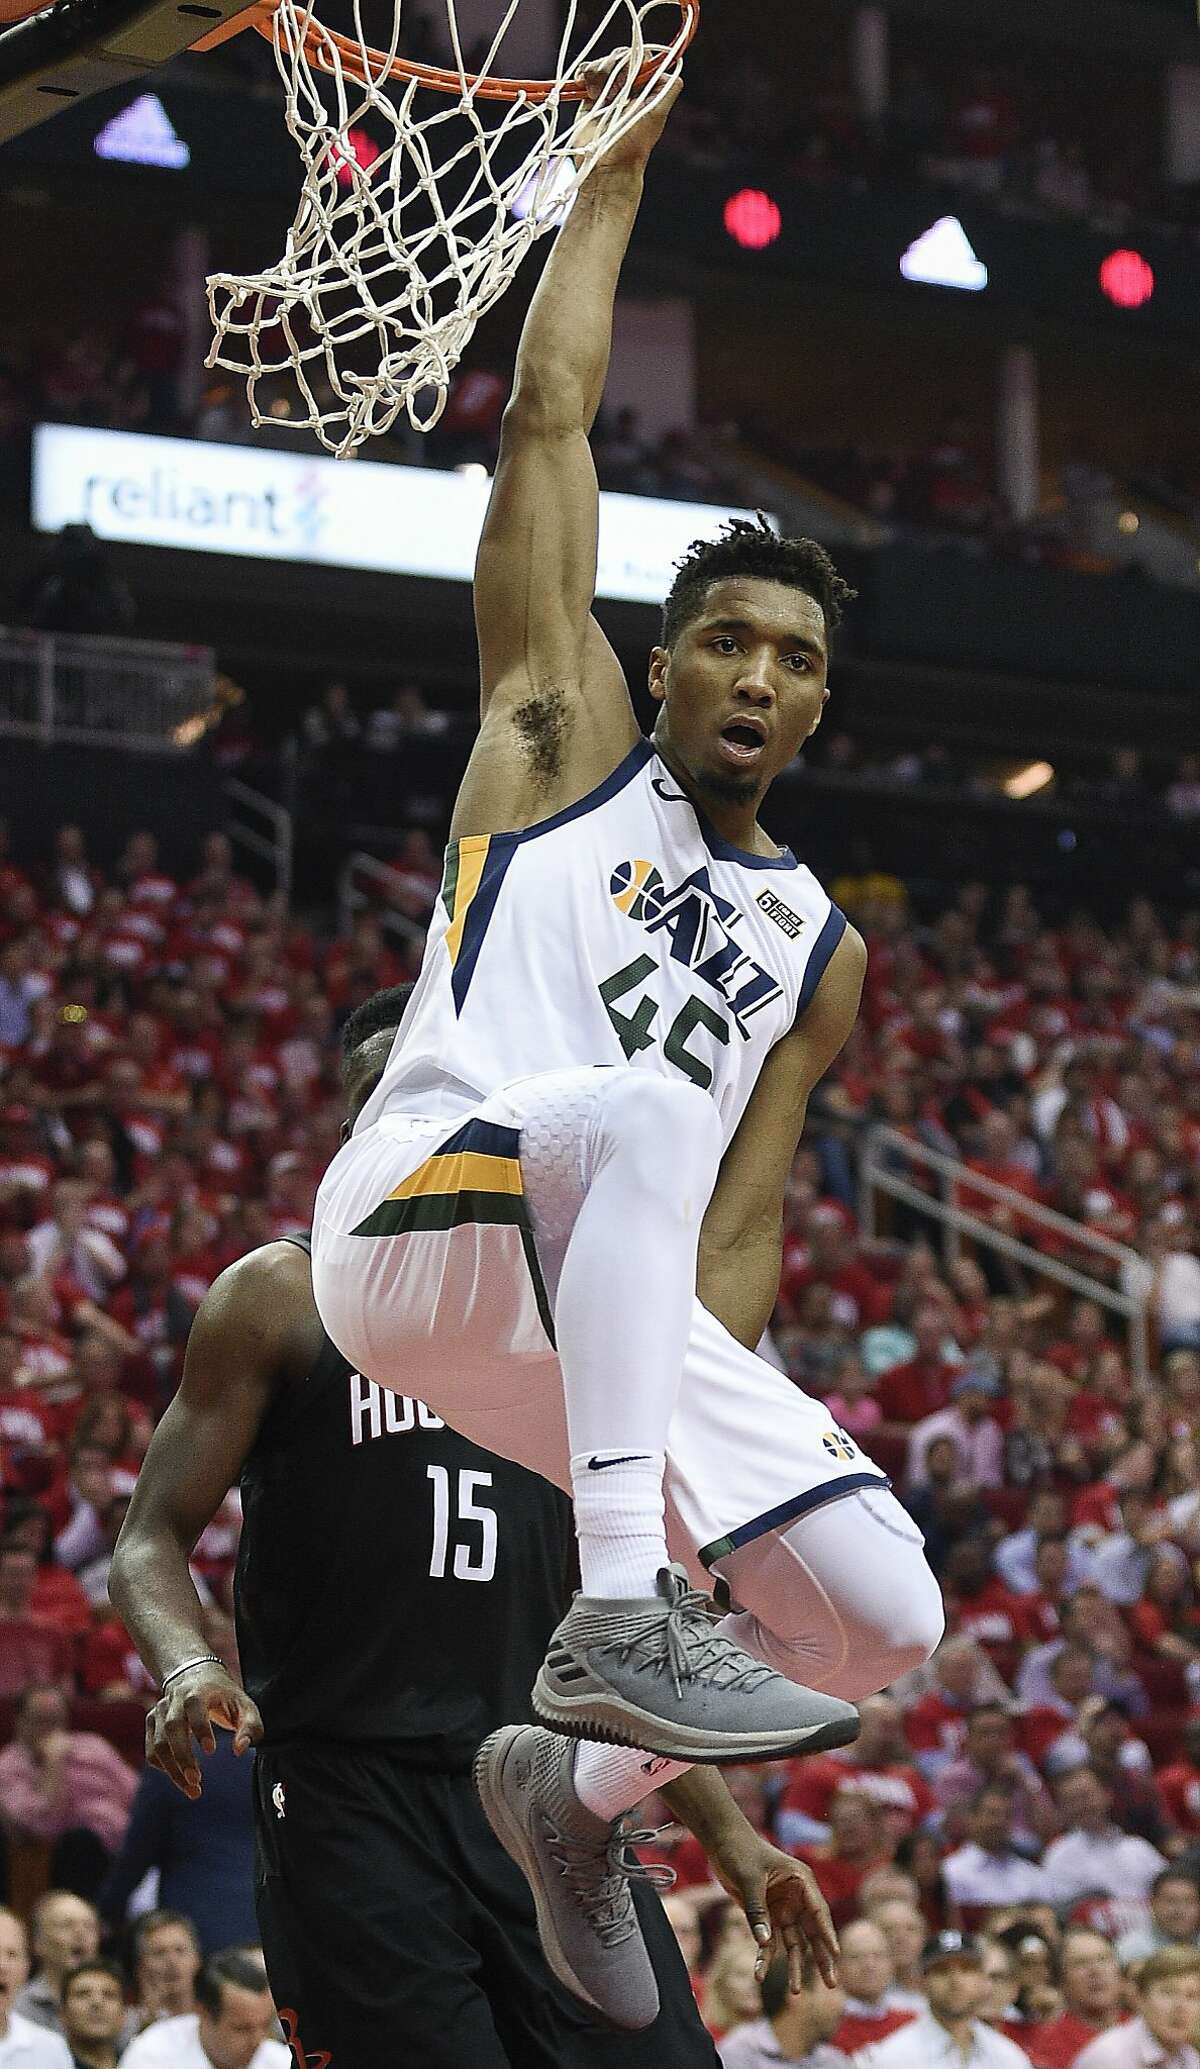 Utah Jazz guard Donovan Mitchell hangs from the rim after his dunk during the second half in Game 2 of an NBA basketball second-round playoff series against the Houston Rockets, Wednesday, May 2, 2018, in Houston. (AP Photo/Eric Christian Smith)